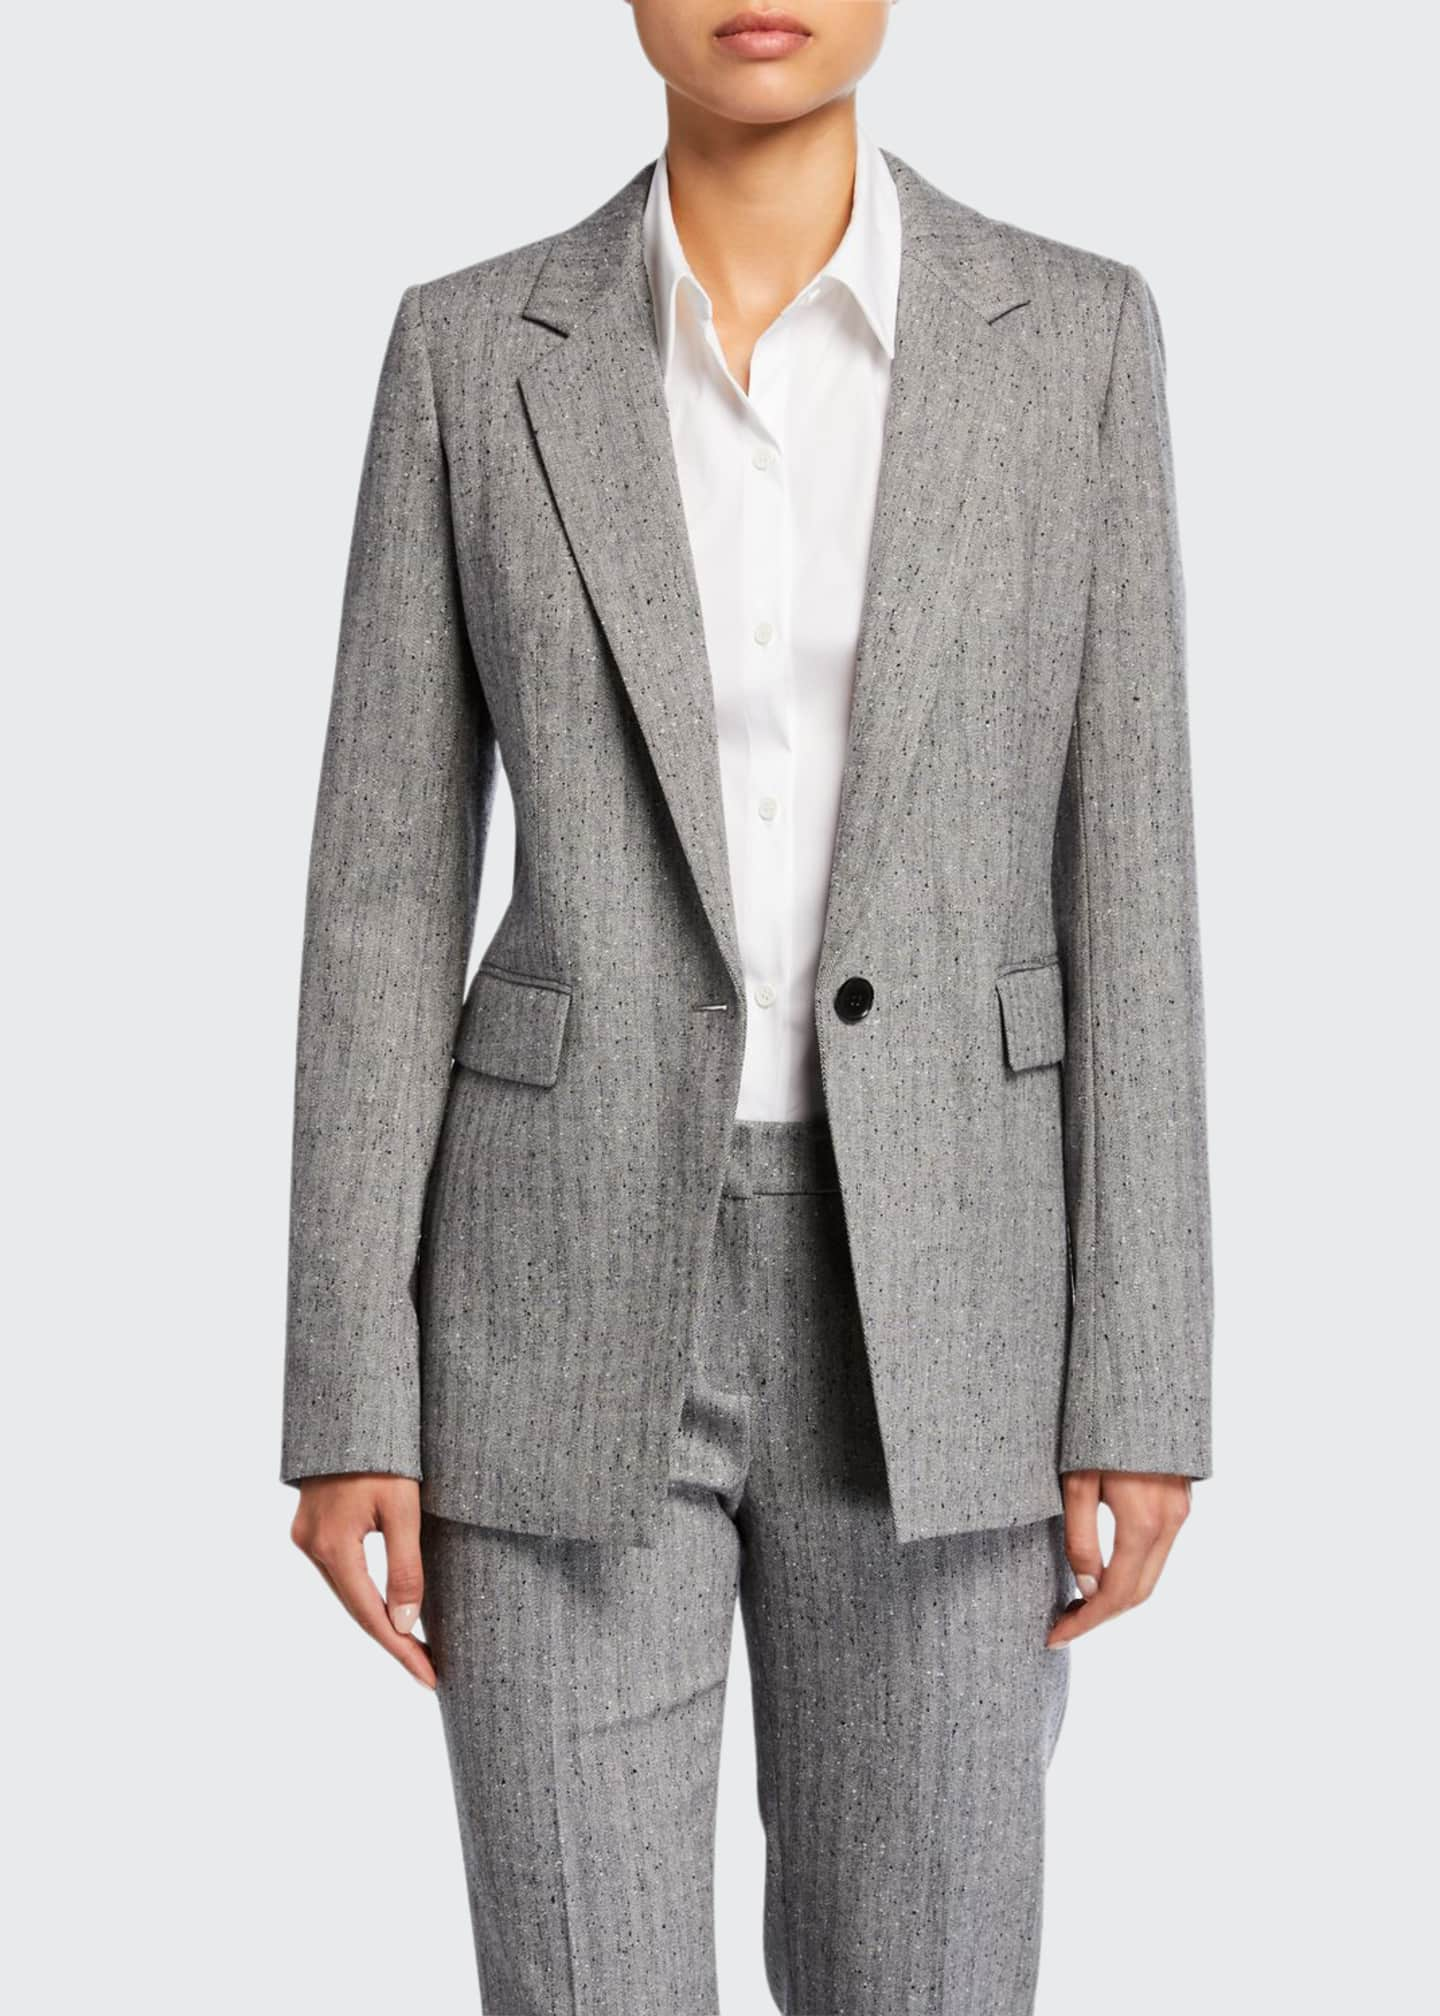 Lafayette 148 New York Rhoda Speckled Herringbone One-Button